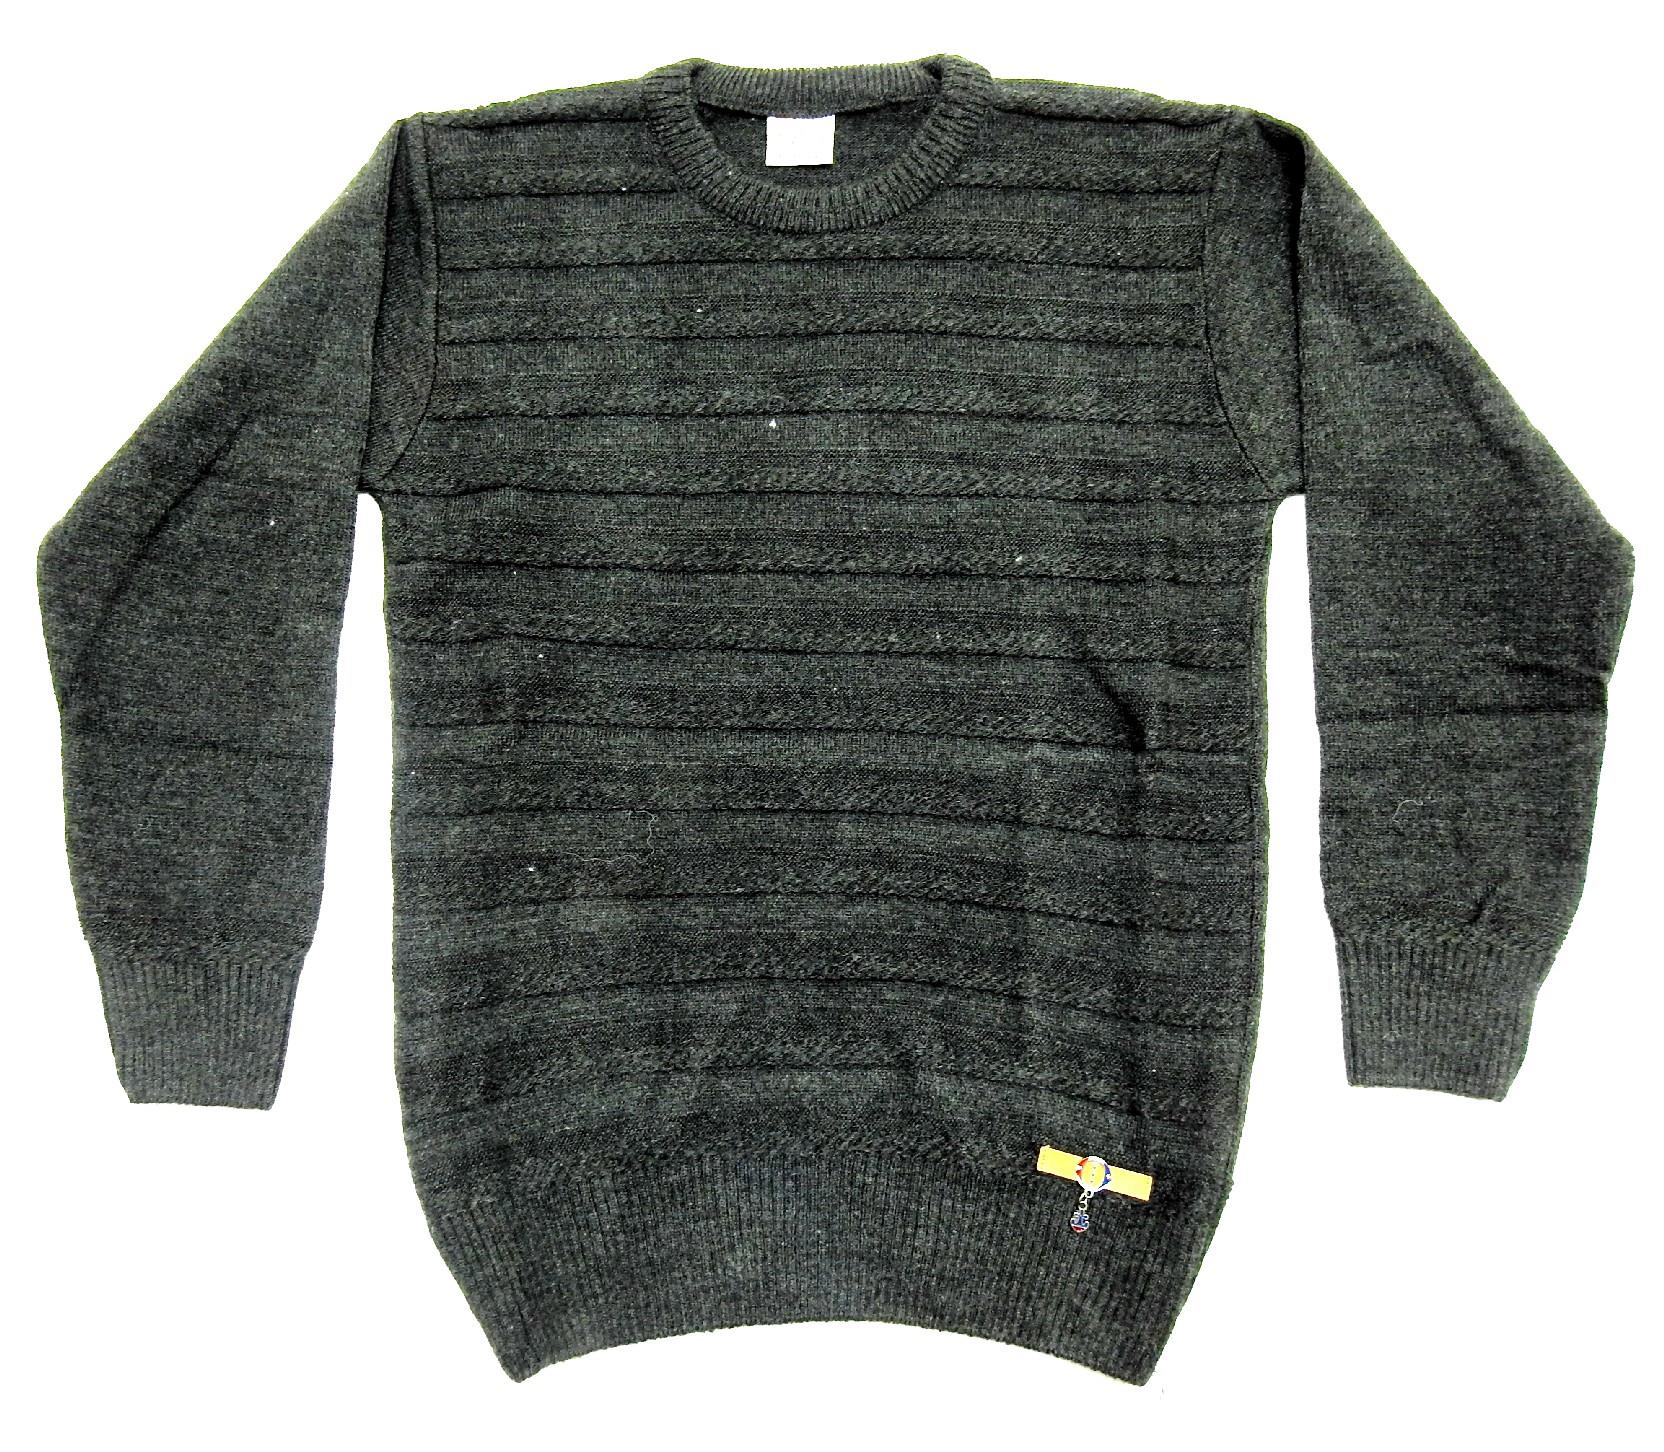 WHOLESALE KNITTED DESIGN PULLOVER SWEATER FOR BOY/KIDS AND BABY (10-12-14 AGE)